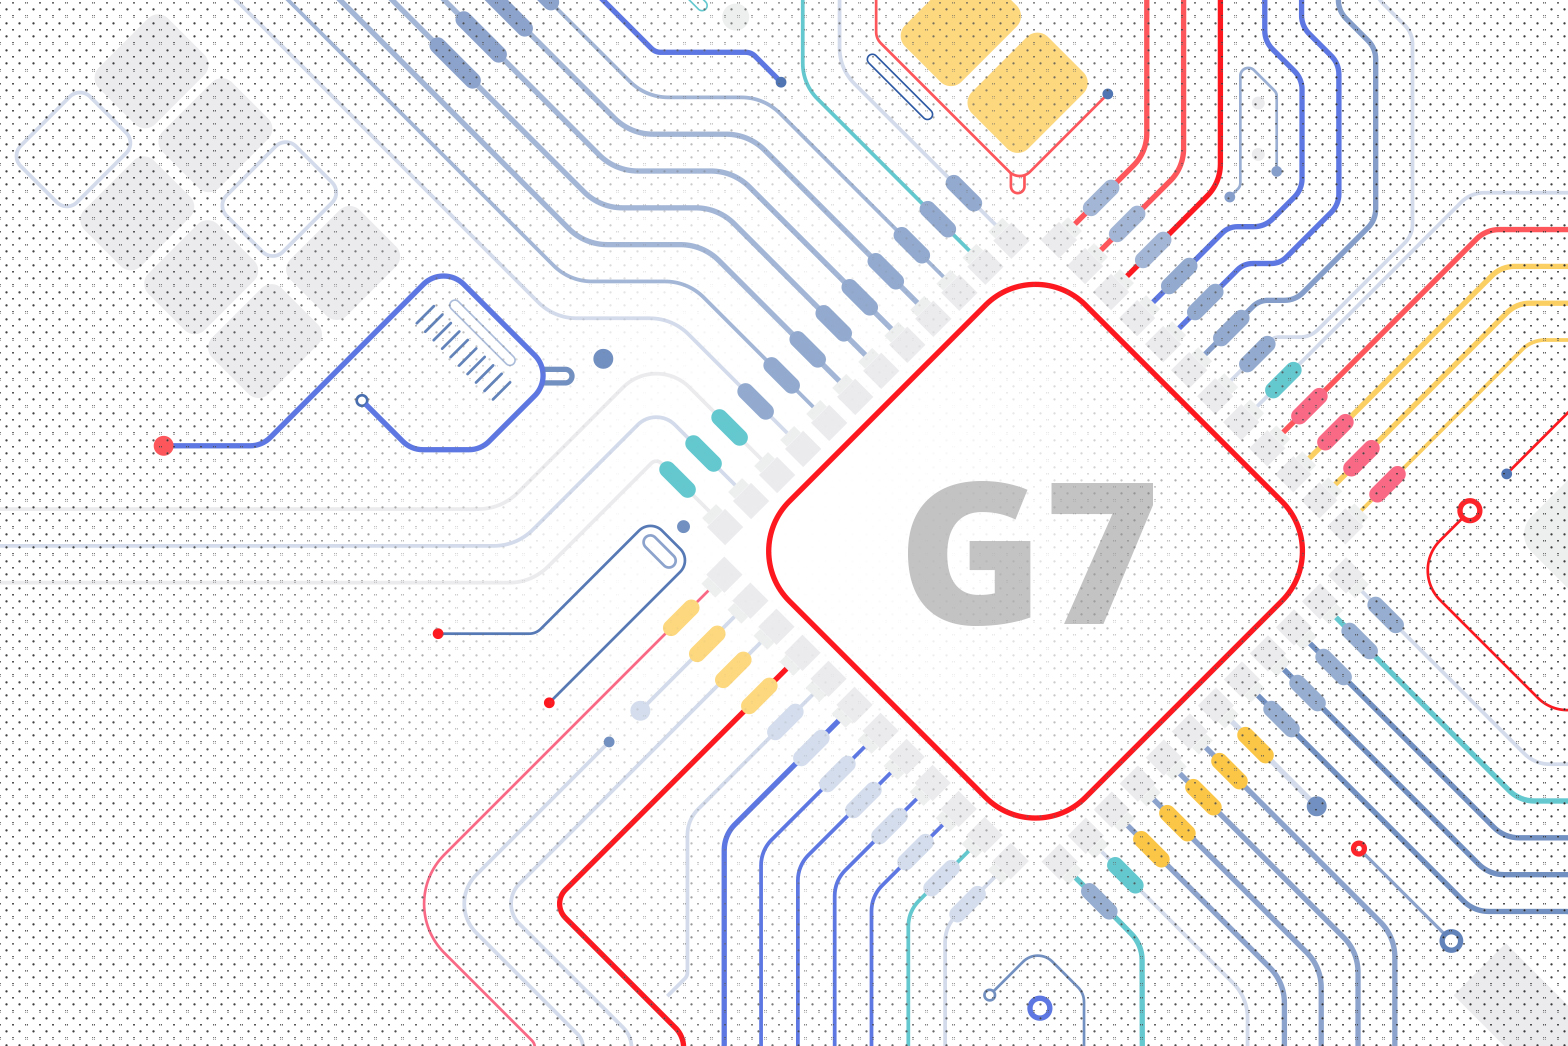 G7 certification for printers